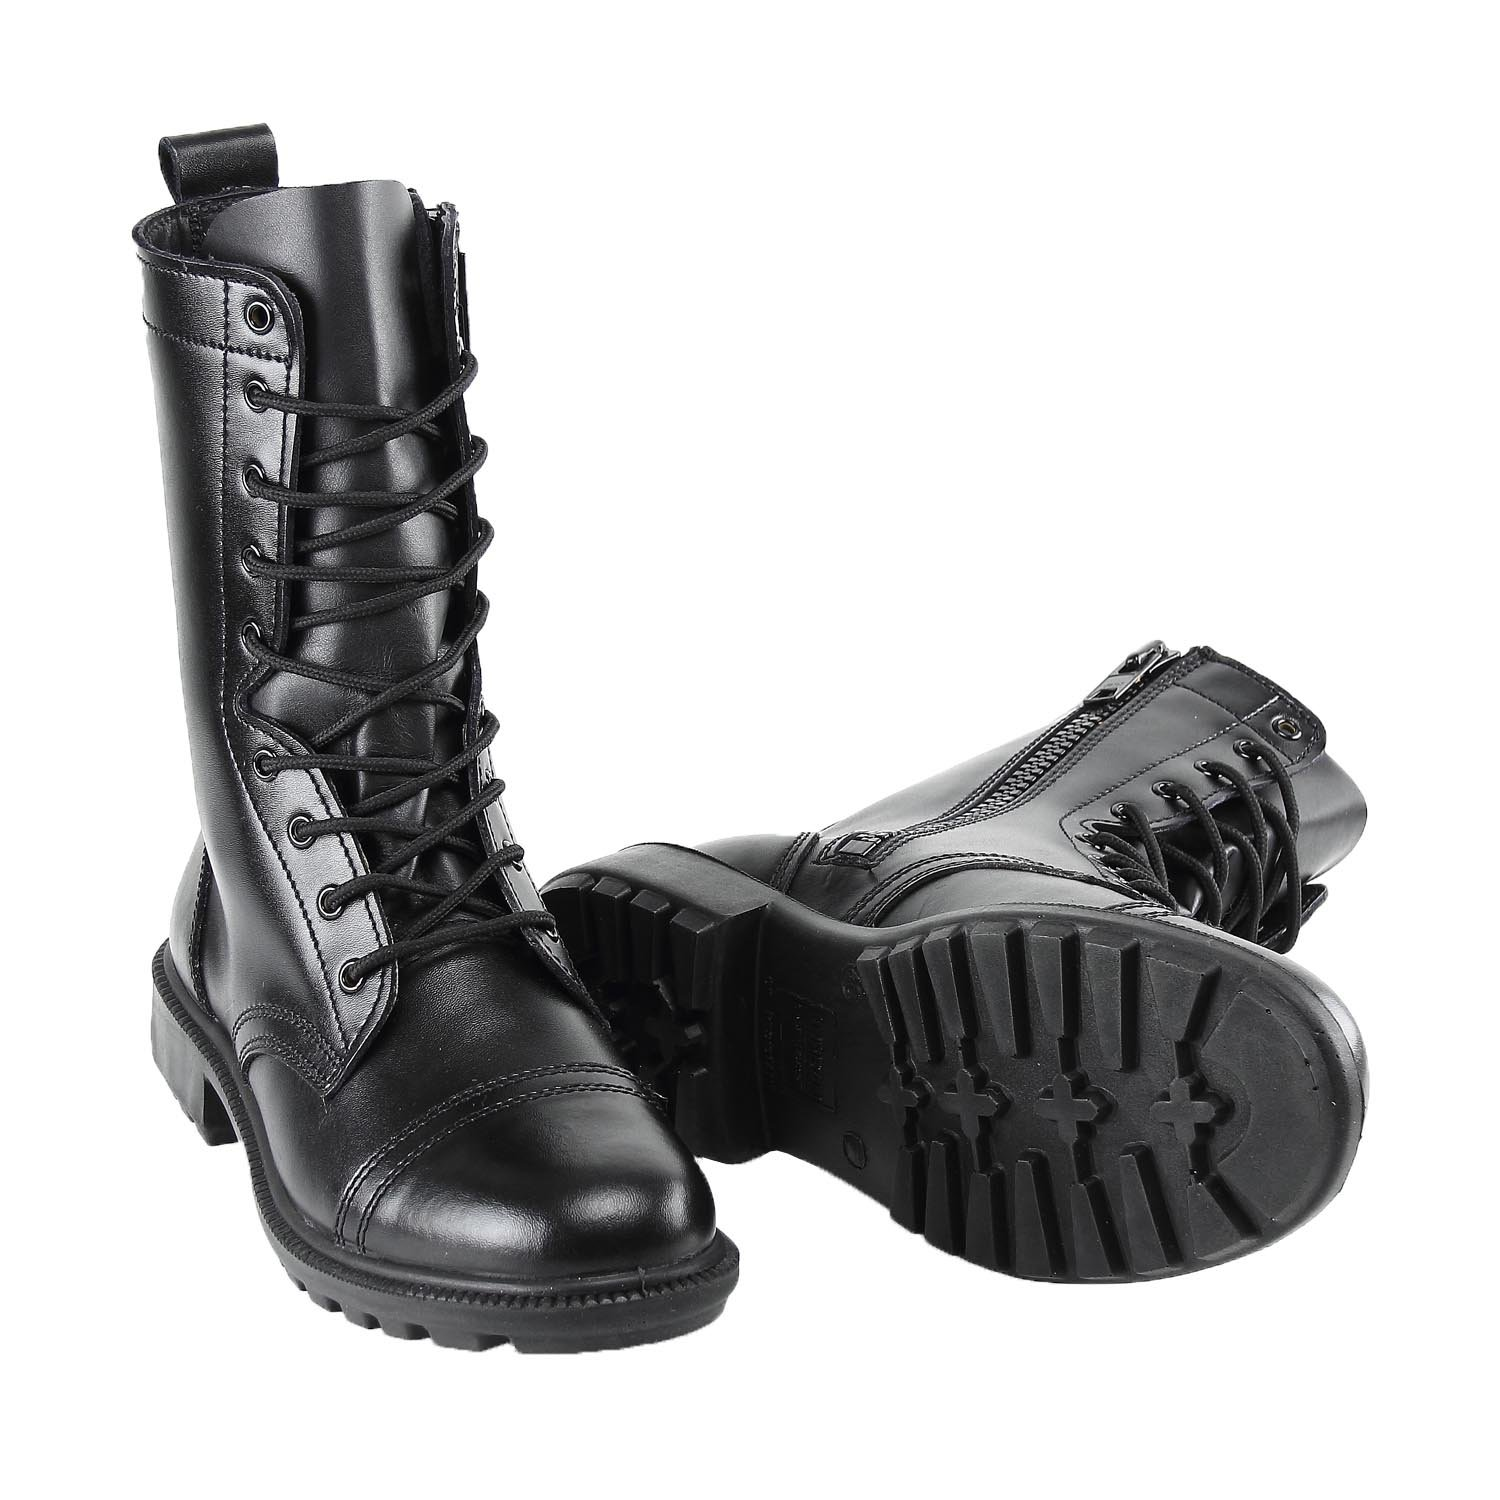 BURGAN 802 Combat Jump Boot (Unisex) - All Leather with Side Zip B075Q4S845 38 (US Mens 6.5 / Ladies 7.5)